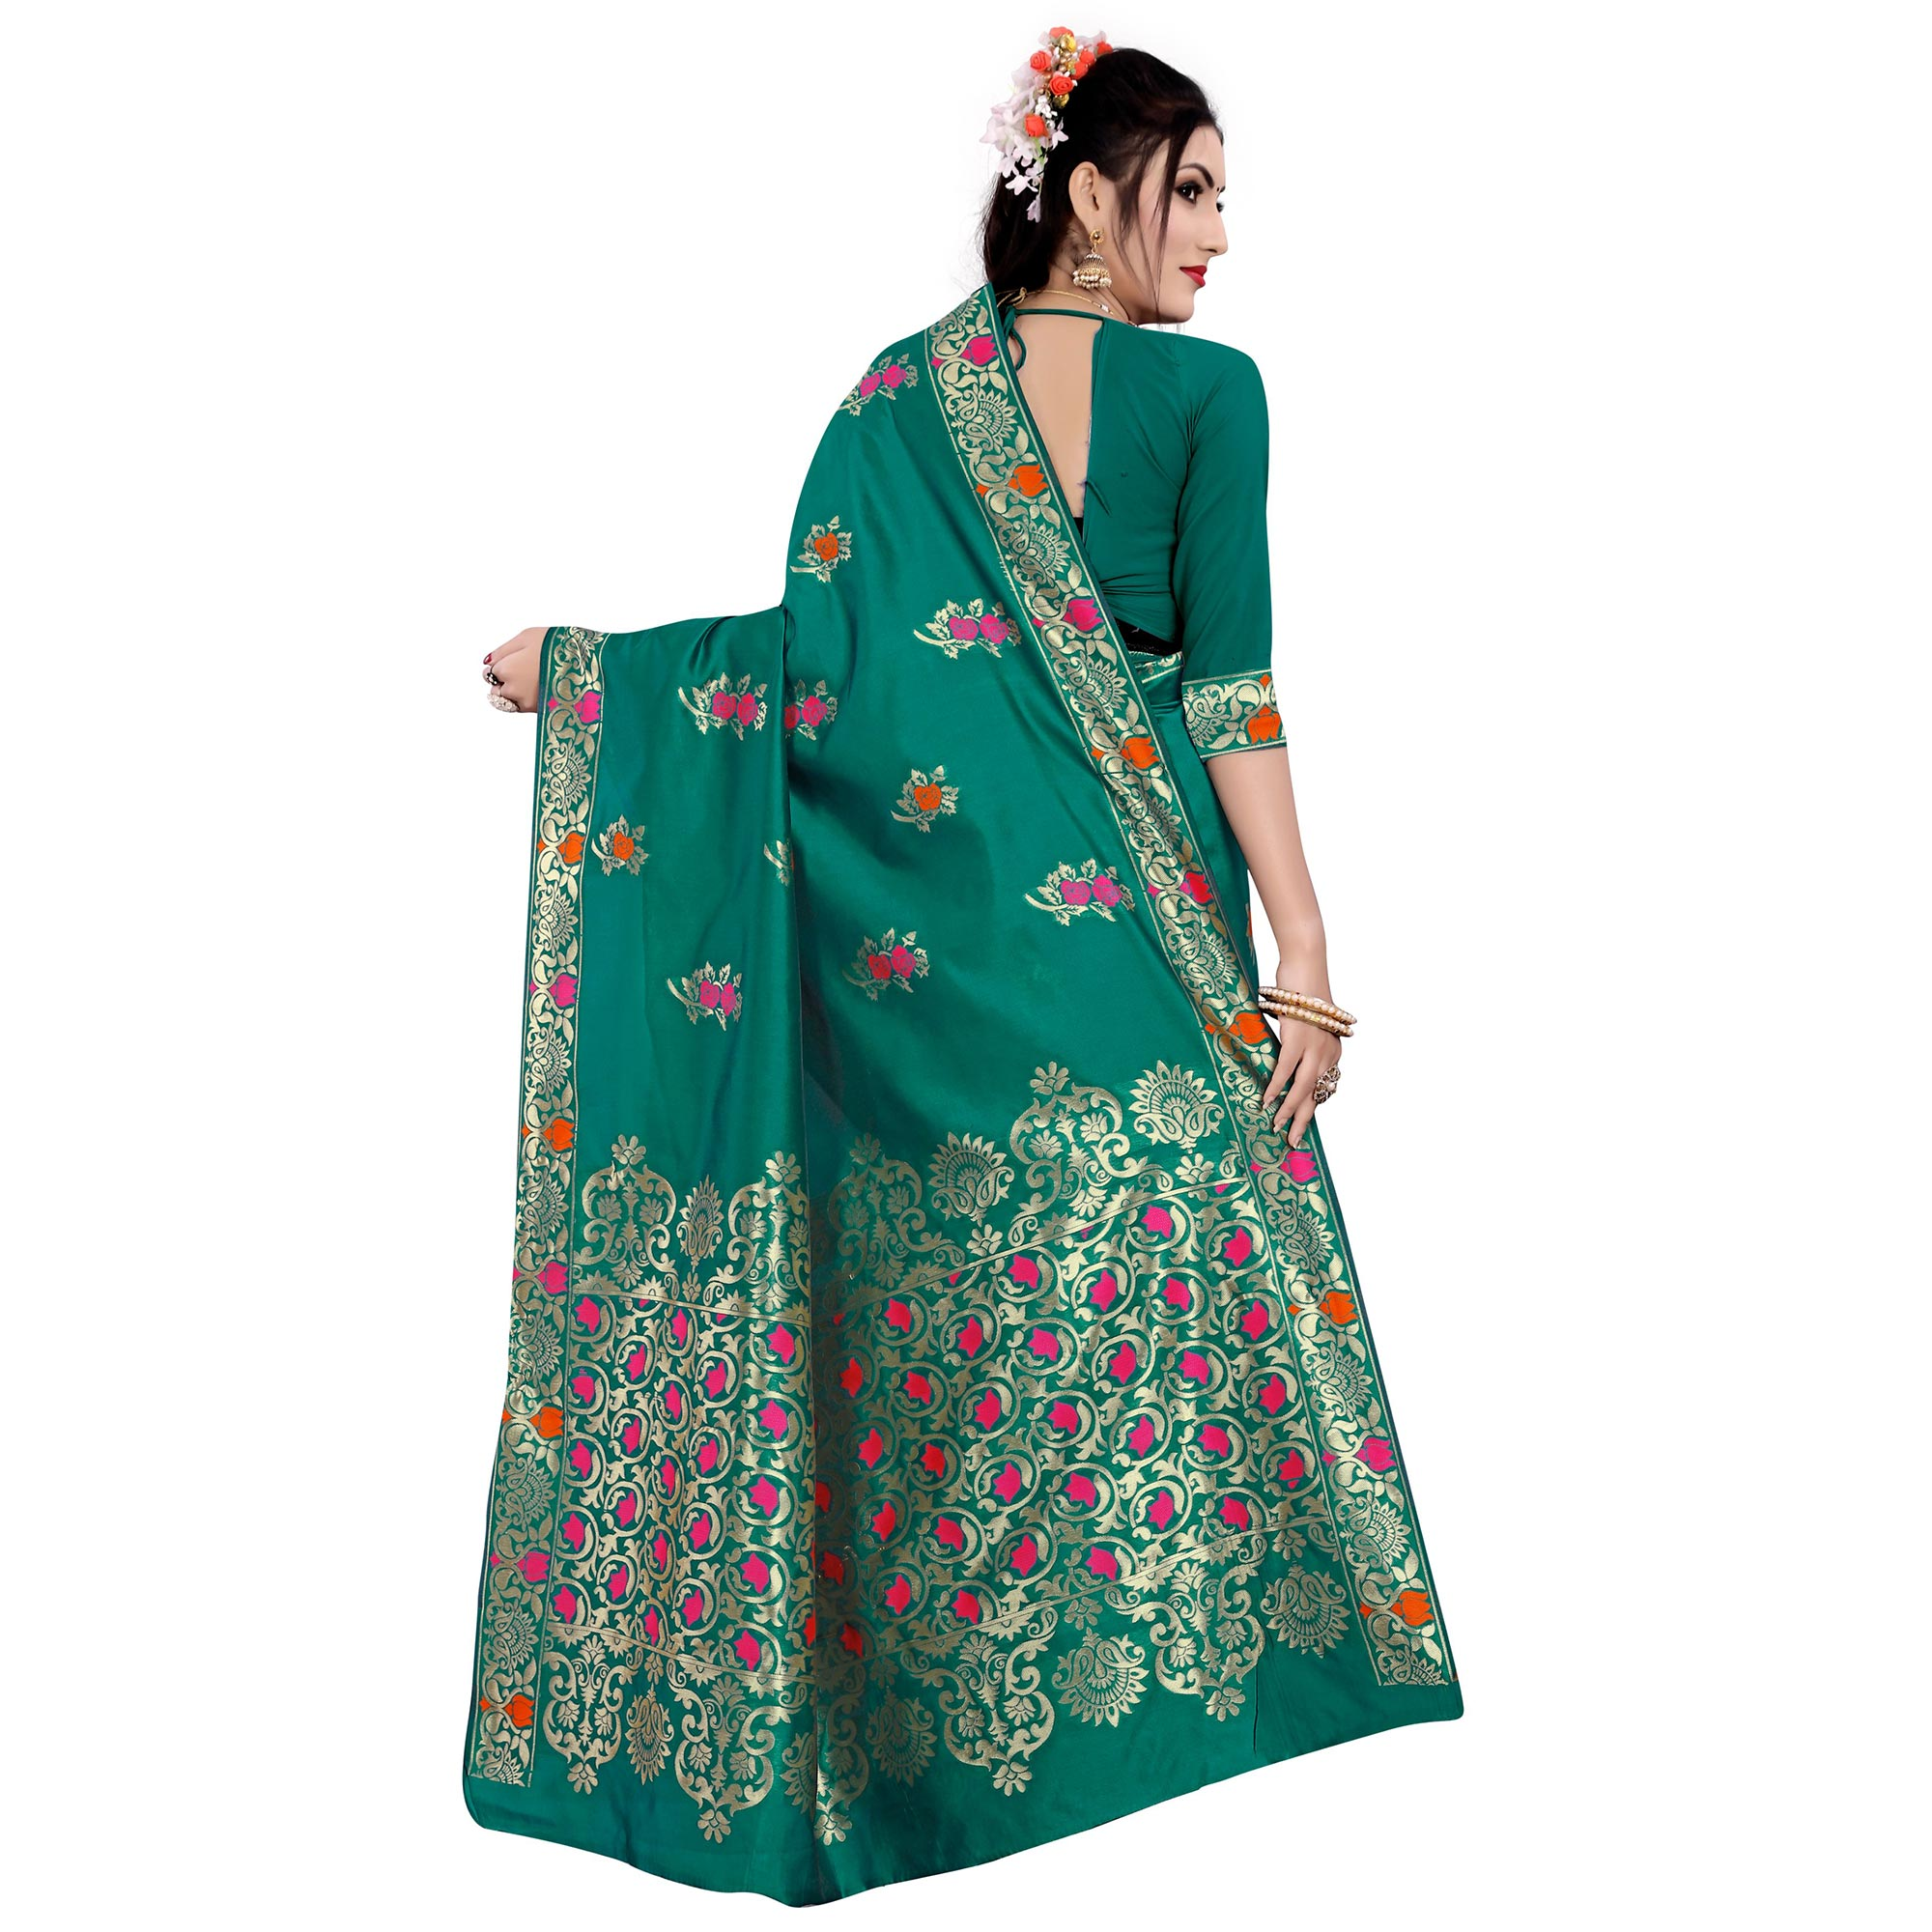 Desirable Turquoise Green Colored Festive Wear Woven Work Banarasi Silk Saree